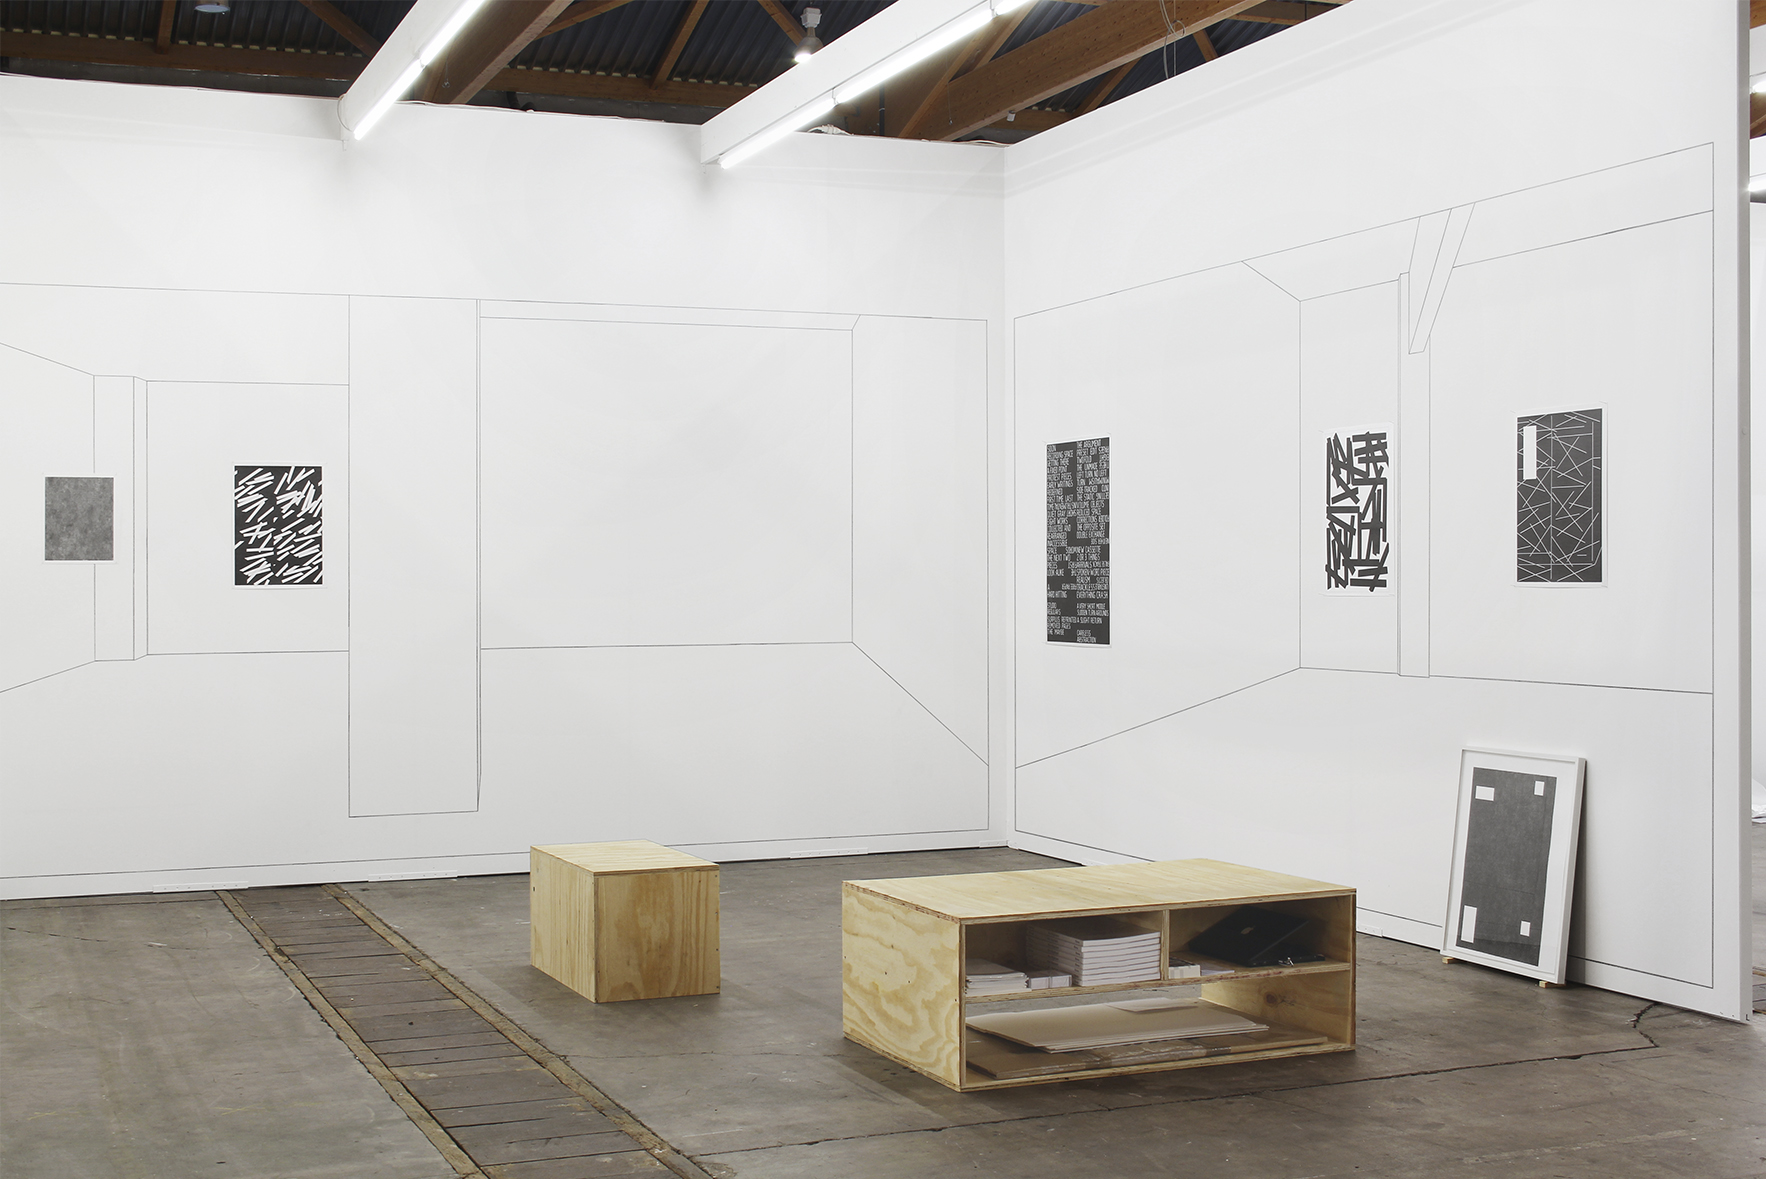 Installation view: Art Brussels, Booth ProjecteSD, 2014 |  | ProjecteSD